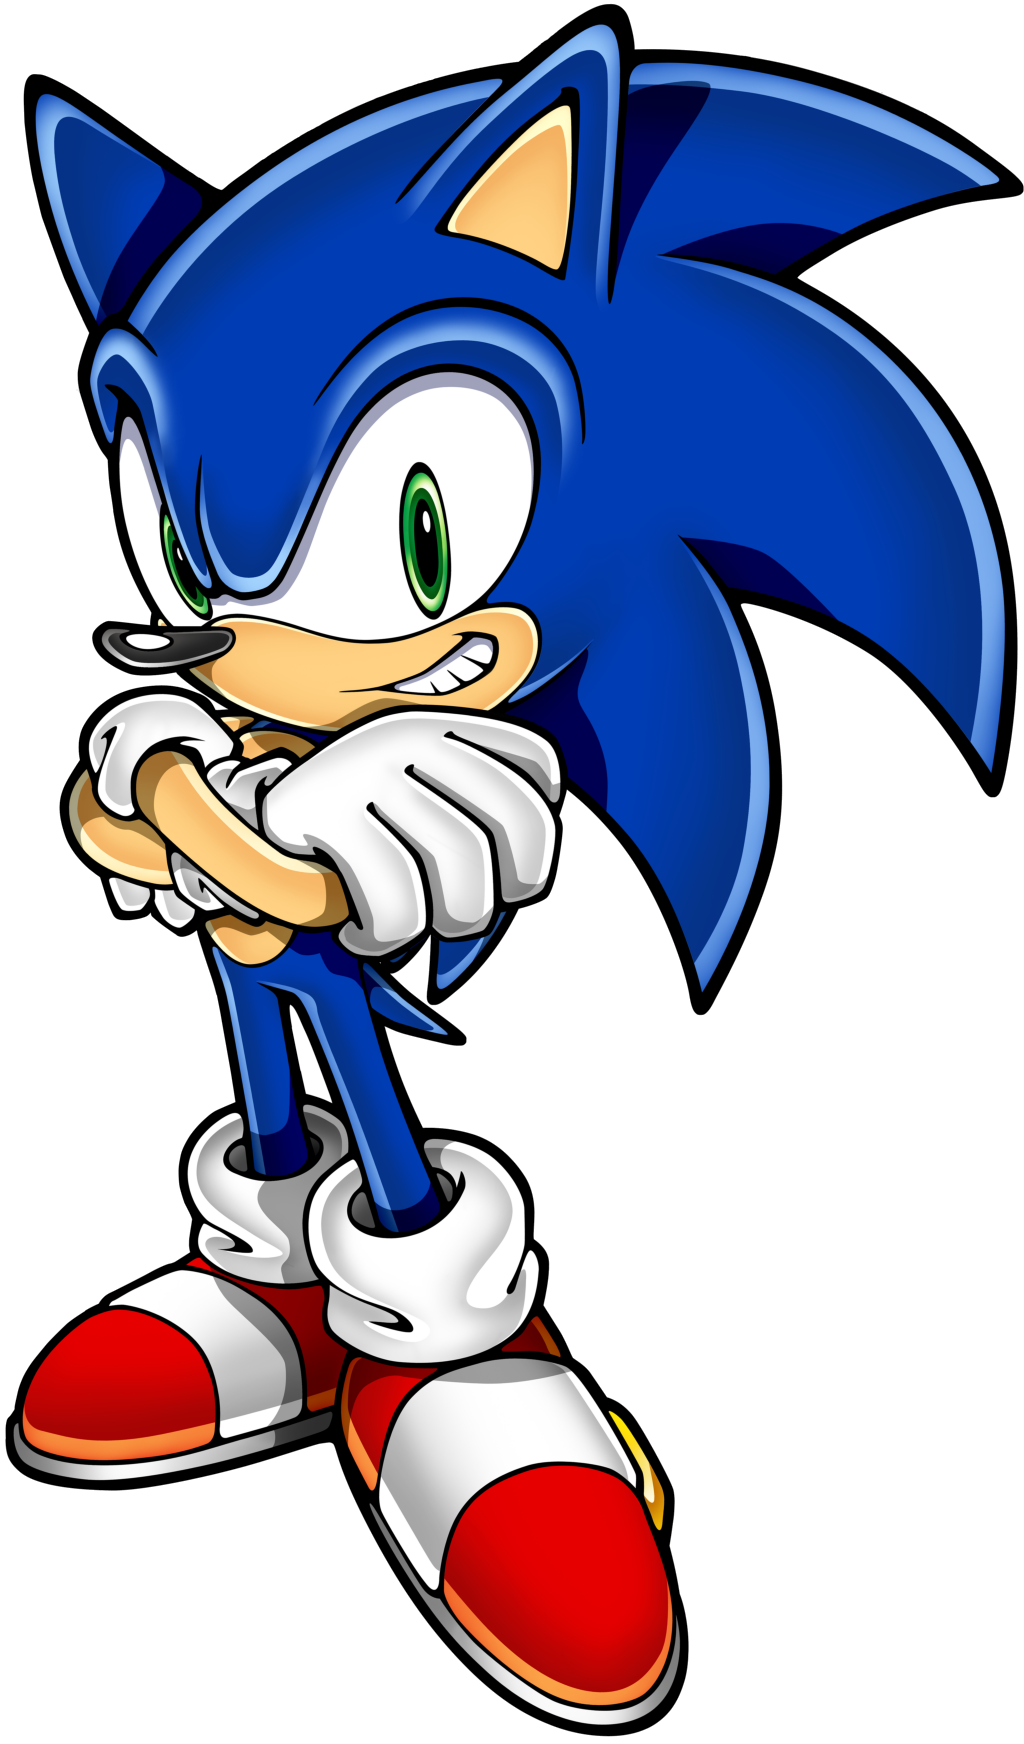 Sonic The Hedgehog PNG - 12998